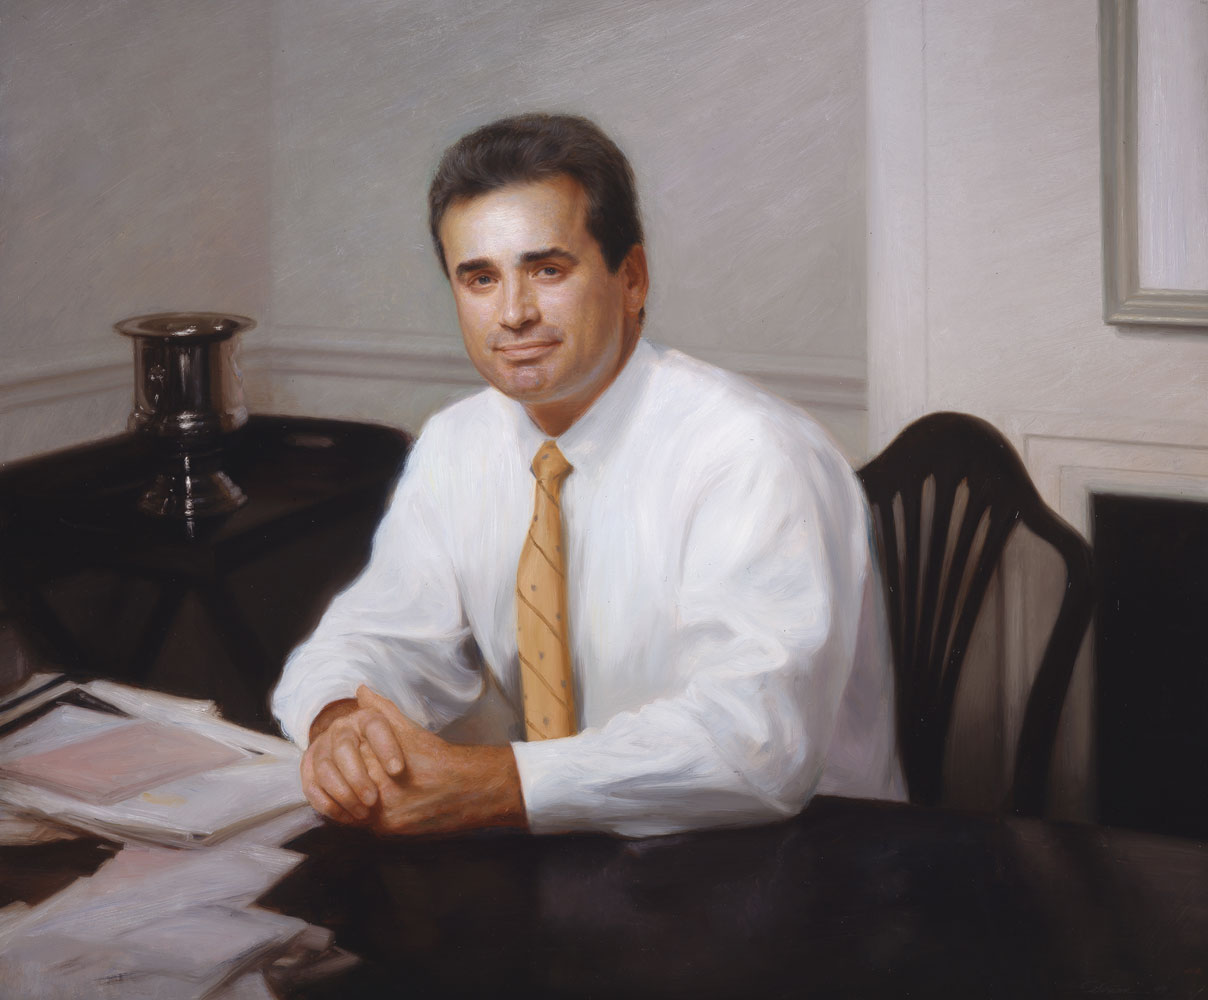 Oil_Portrait_34.jpg